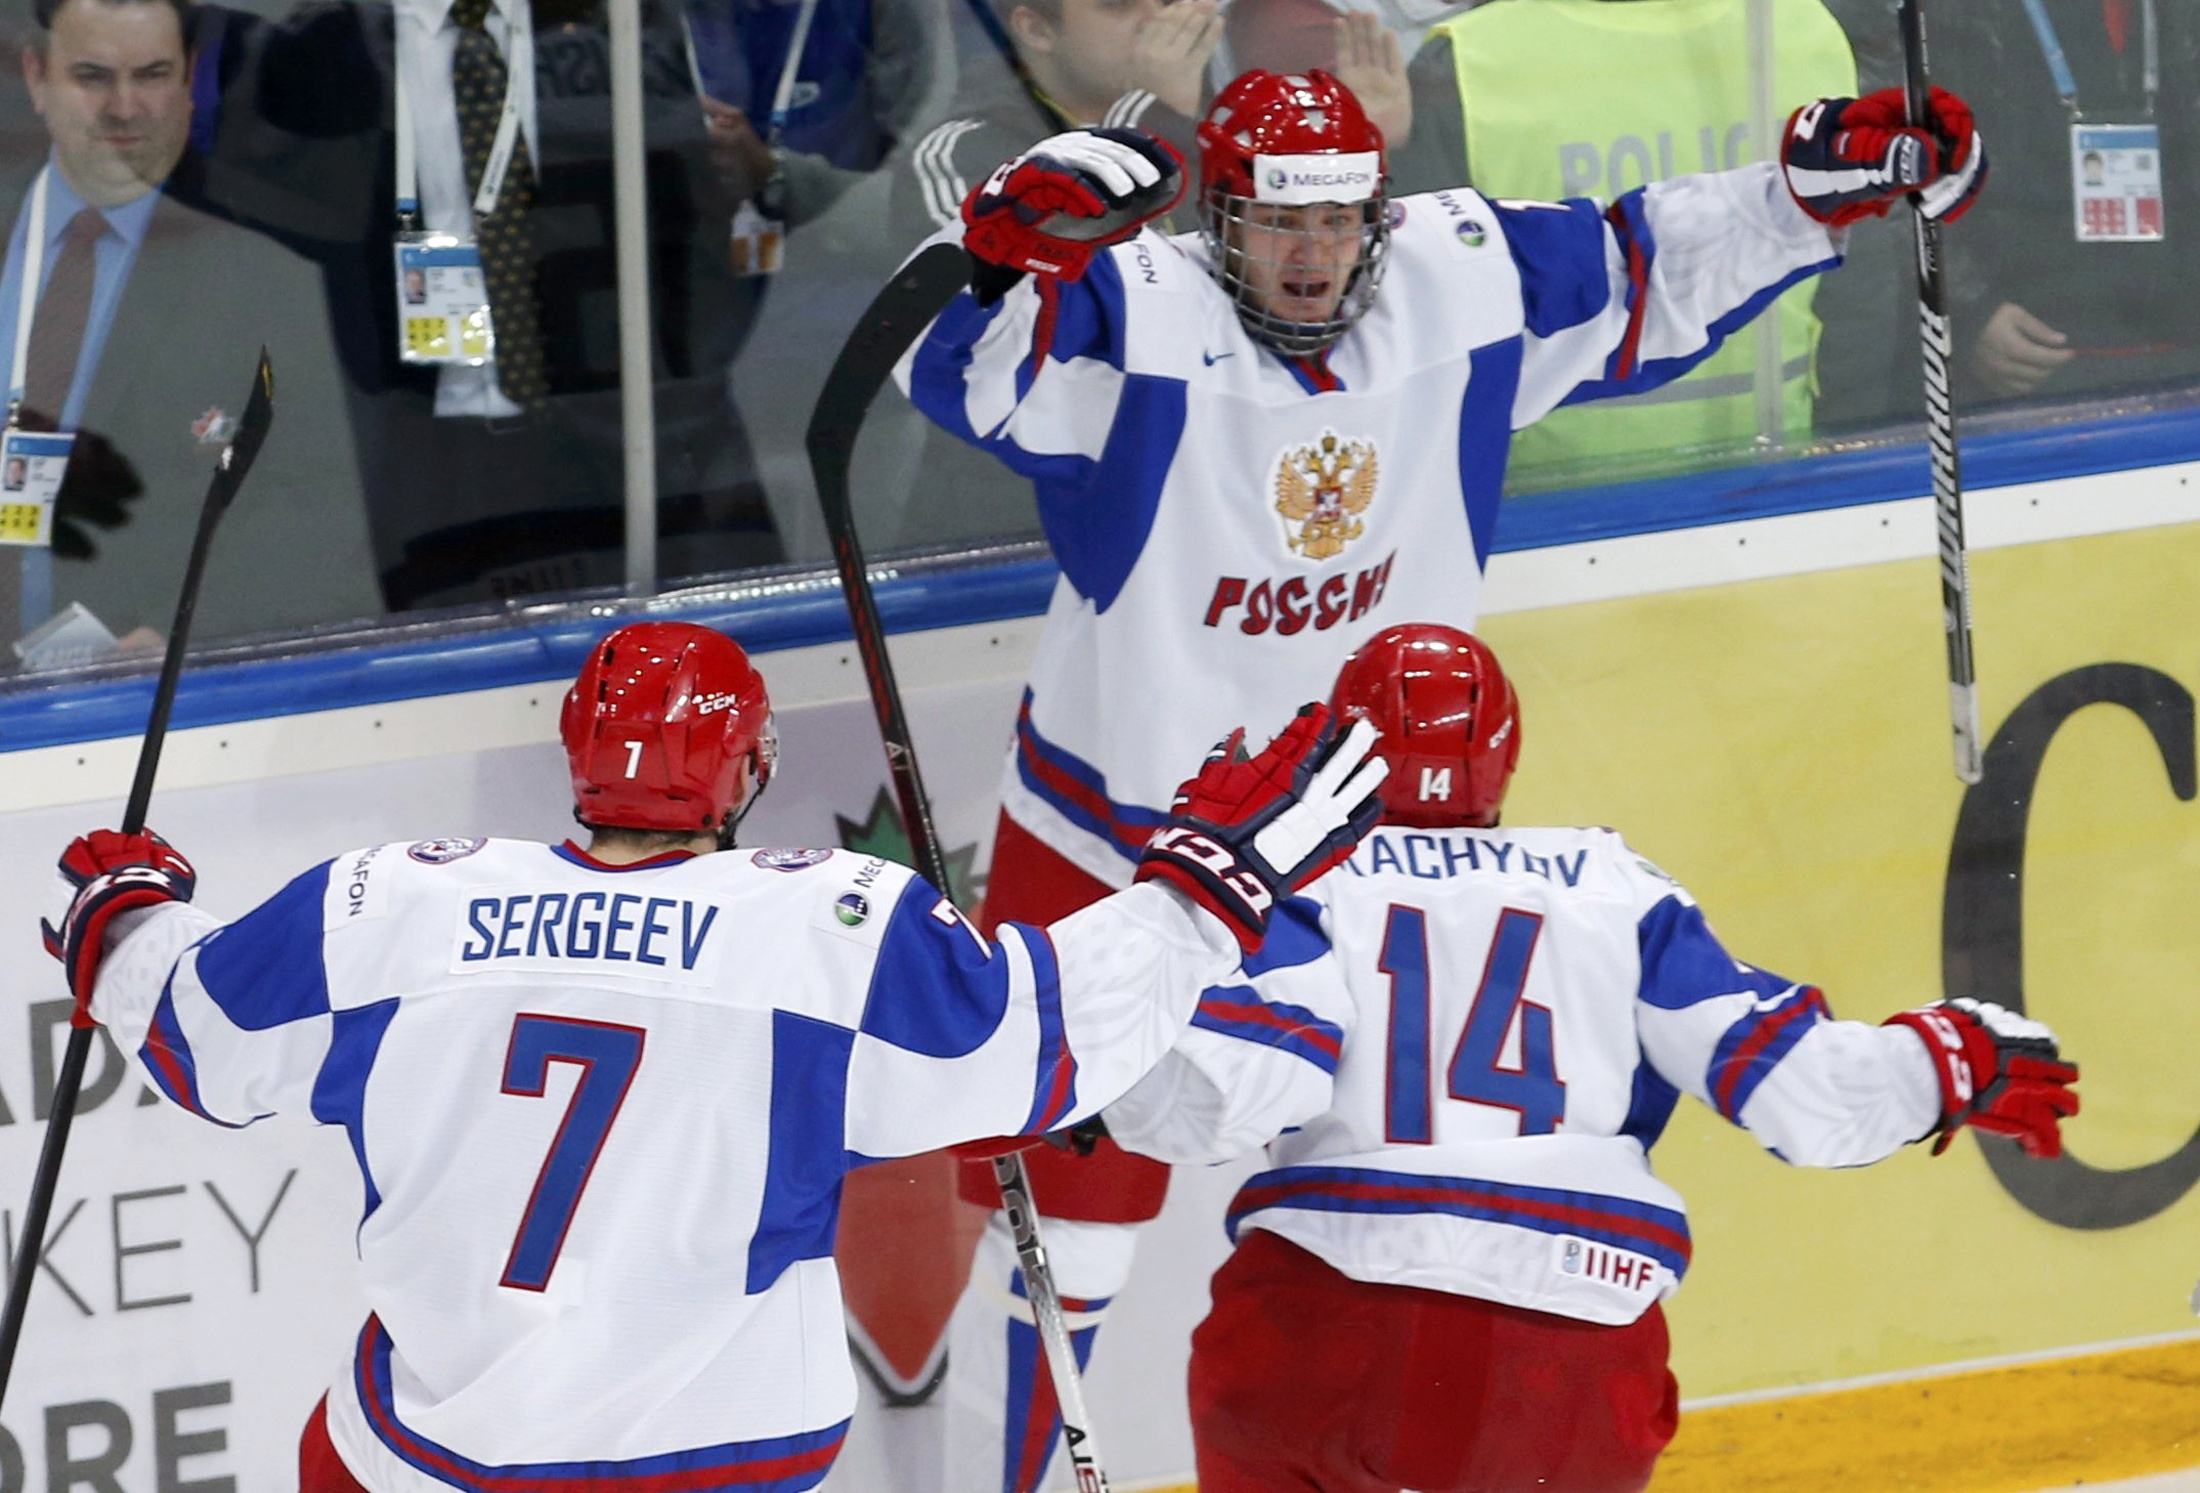 Valeri Nichushkin's overtime goal delivered the bronze medal to Russia. (Reuters)